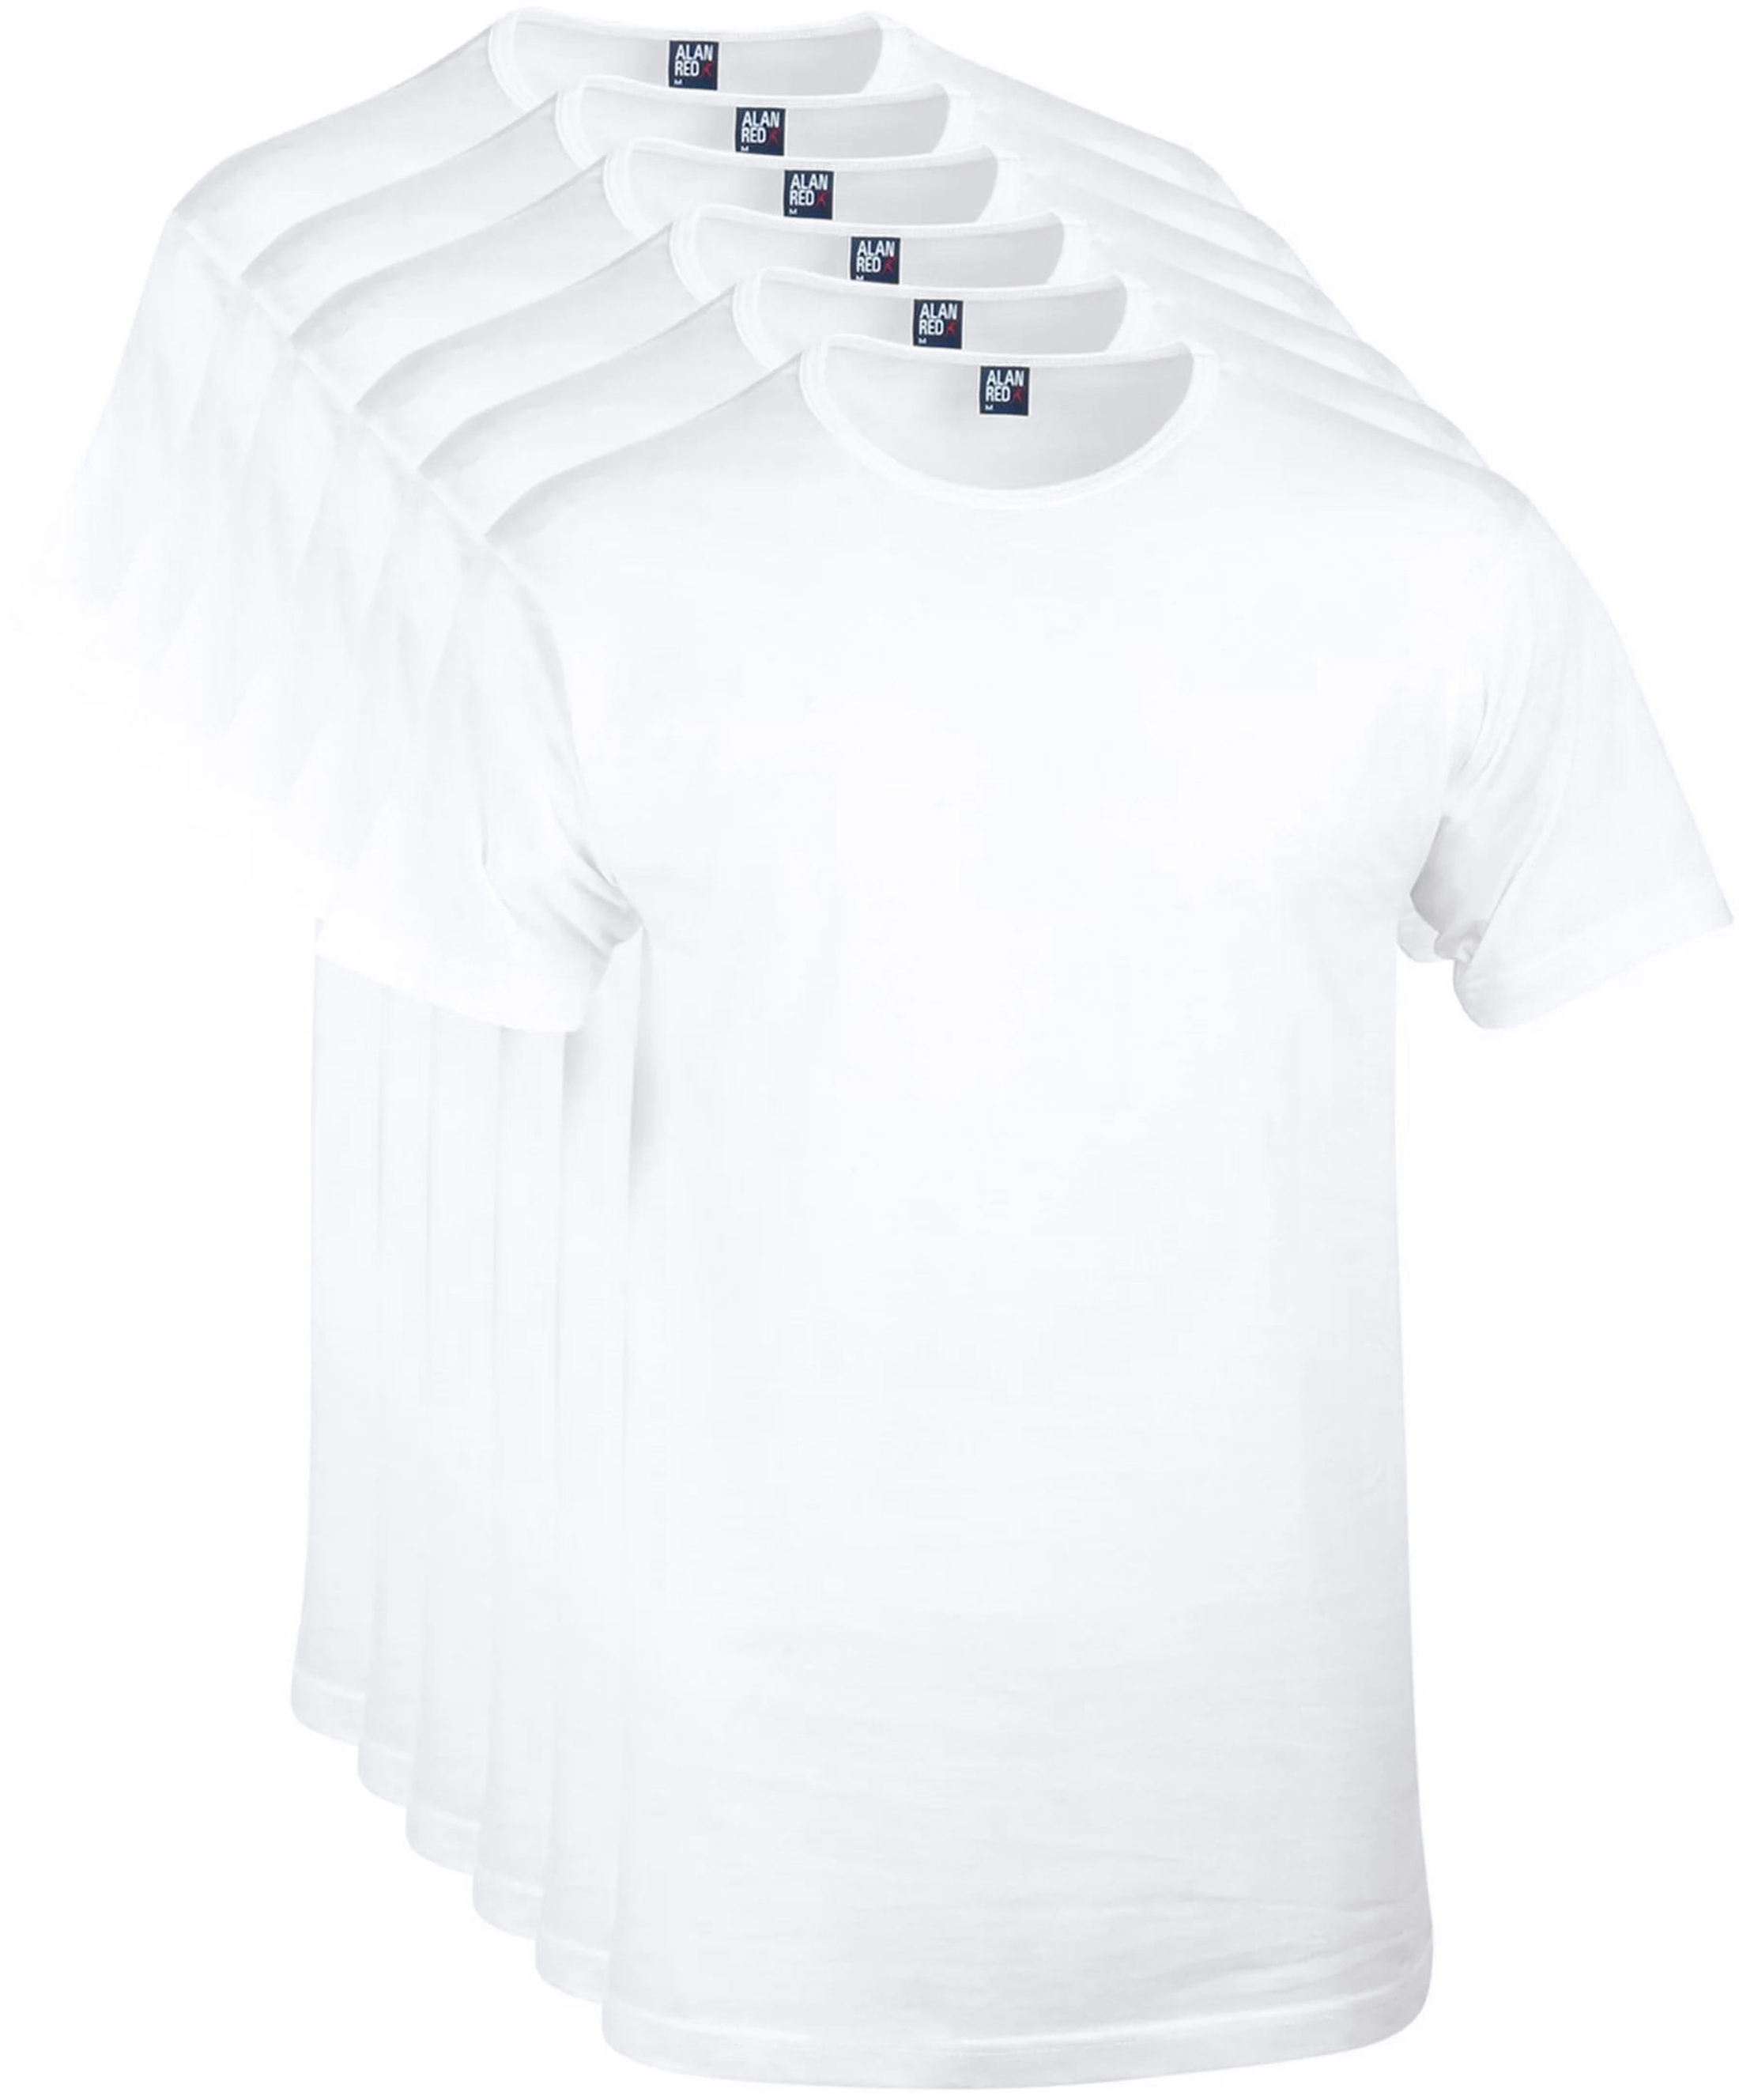 Alan Red Special Offer O-Neck T-shirts White 6-Pack foto 0